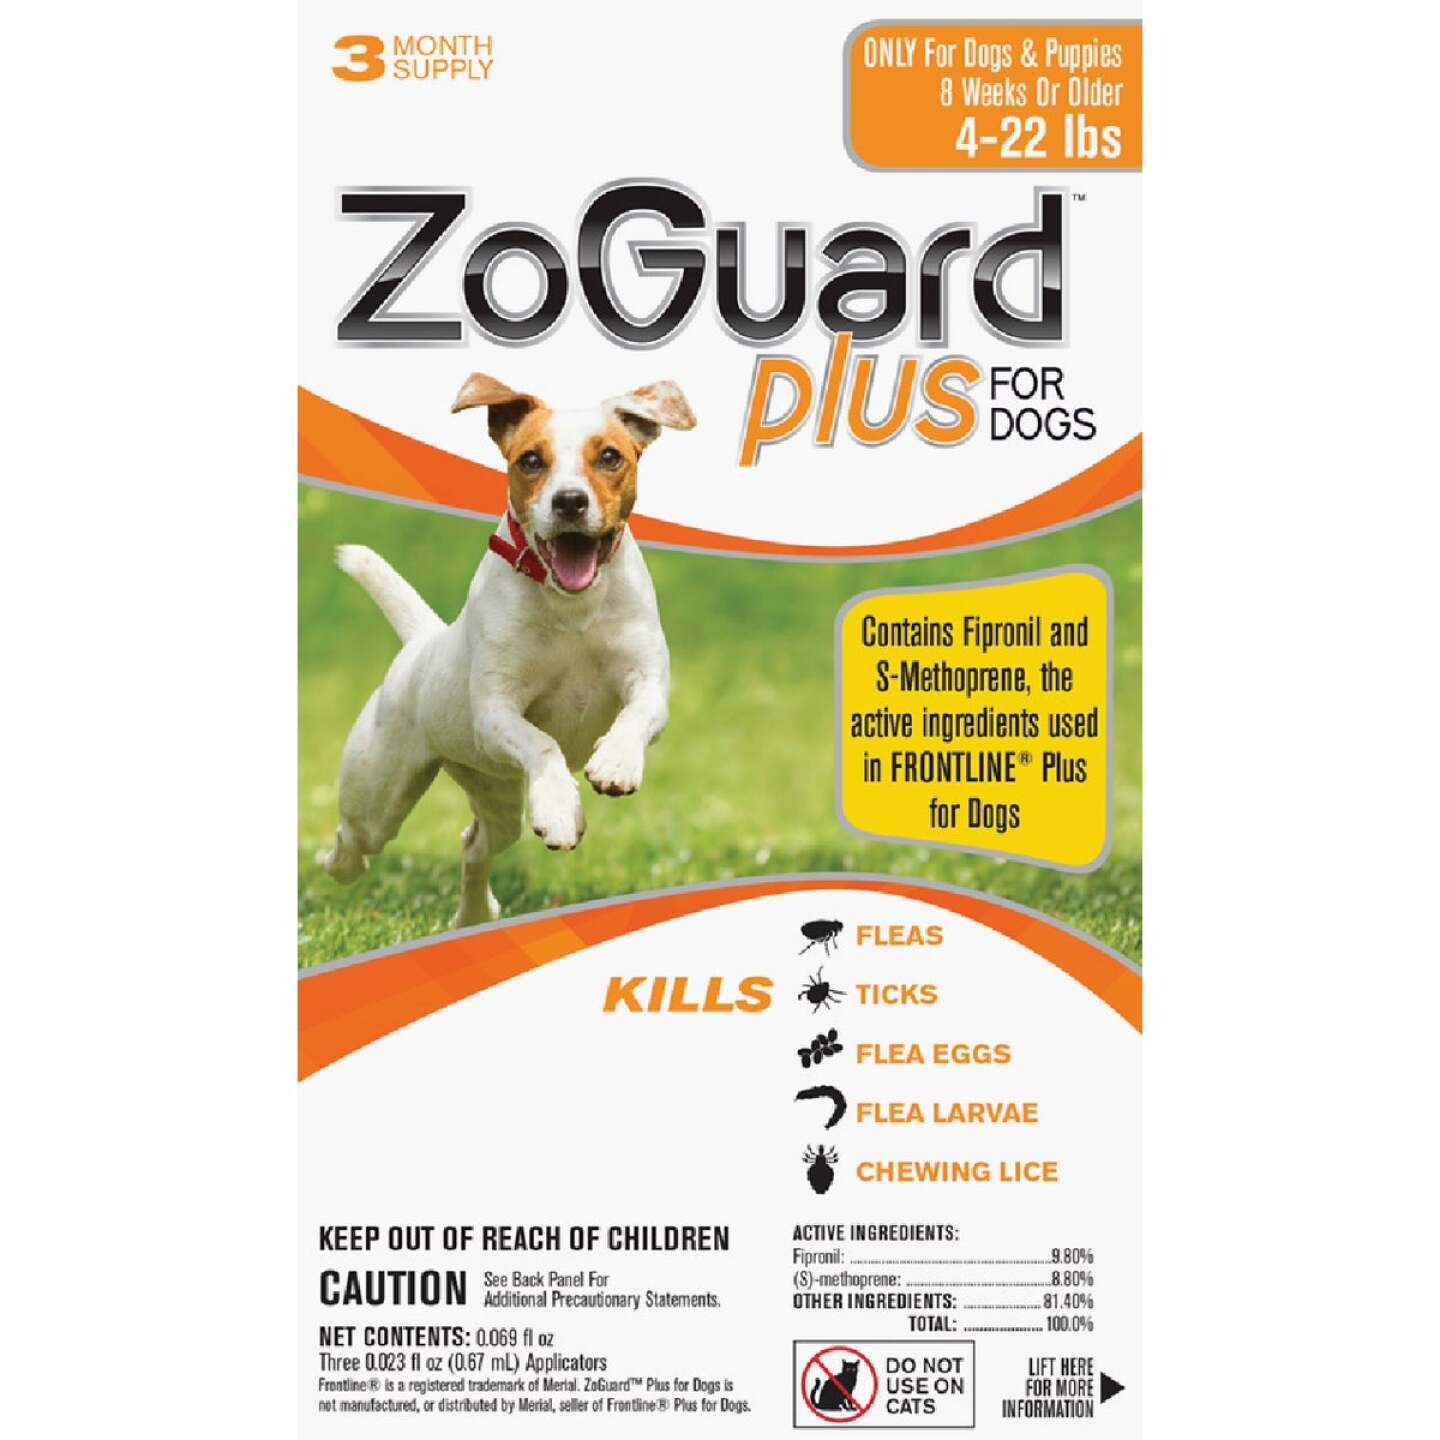 ZoGuard Plus 3-Month Supply Flea & Tick Treatment For Dogs 4 Lb. to 22 Lb. Image 1